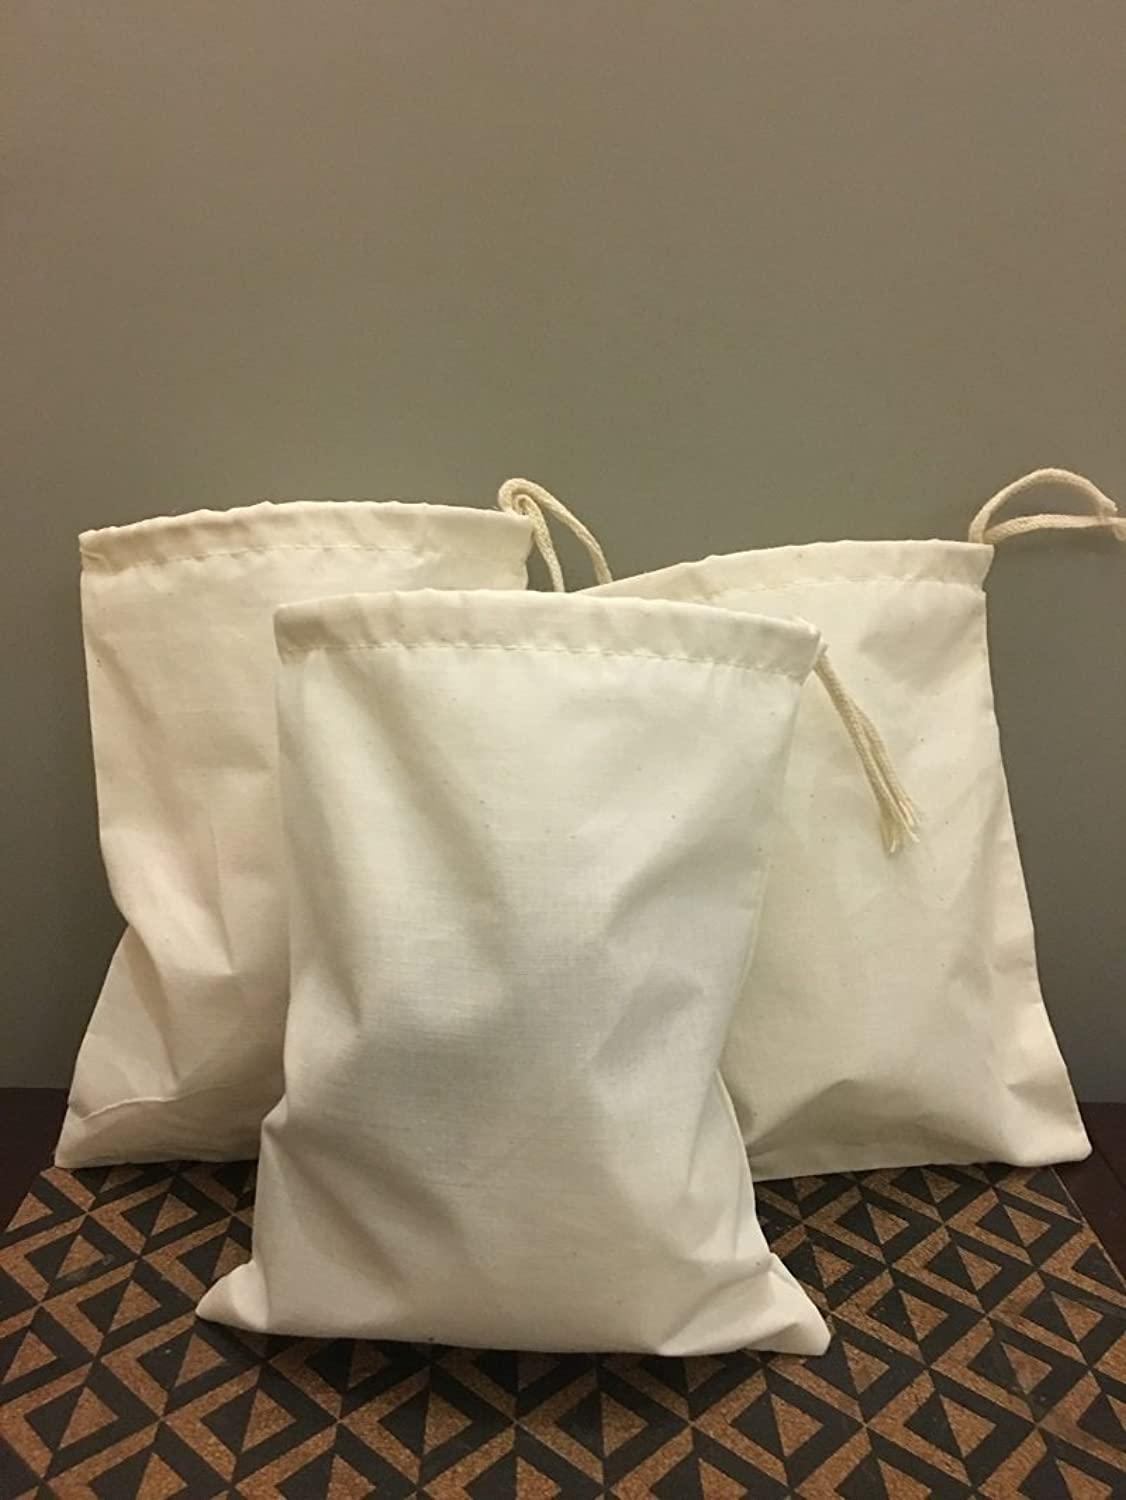 8x12 Cotton Single Drawstring Muslin Bags (Natural color)25 Count Pack